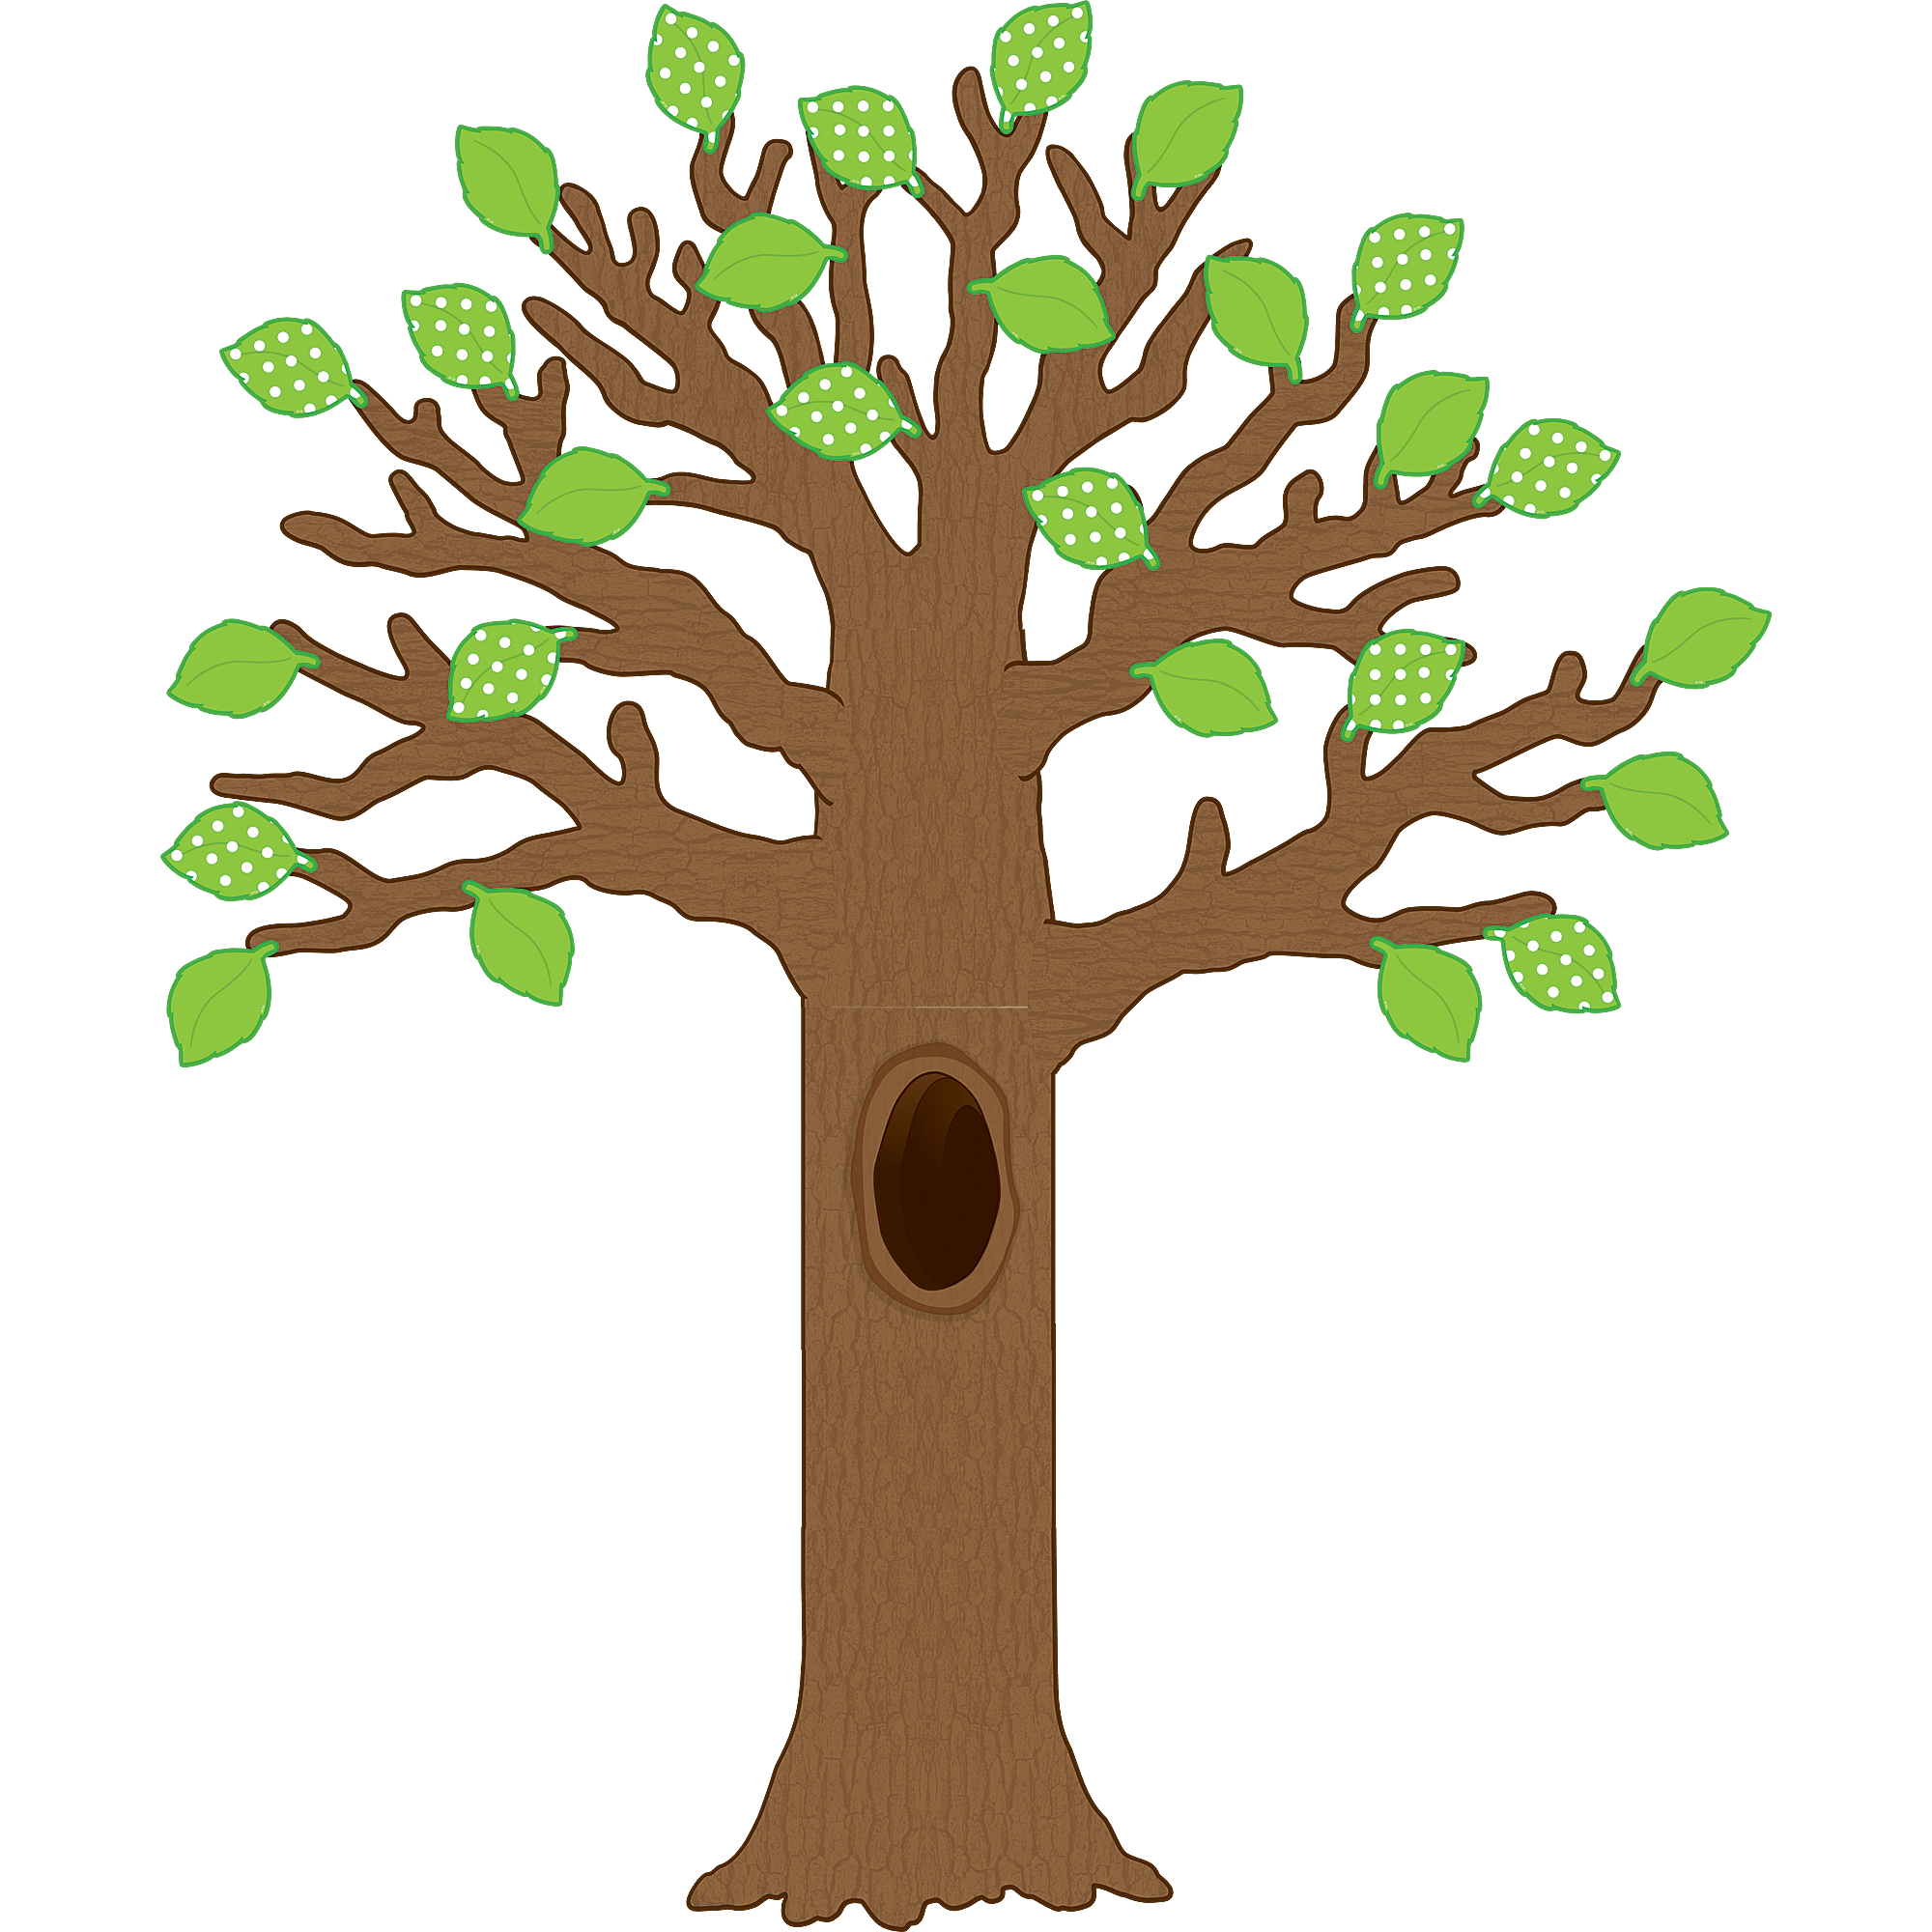 Big Tree Clipart at GetDrawings.com | Free for personal use Big Tree ... graphic free library